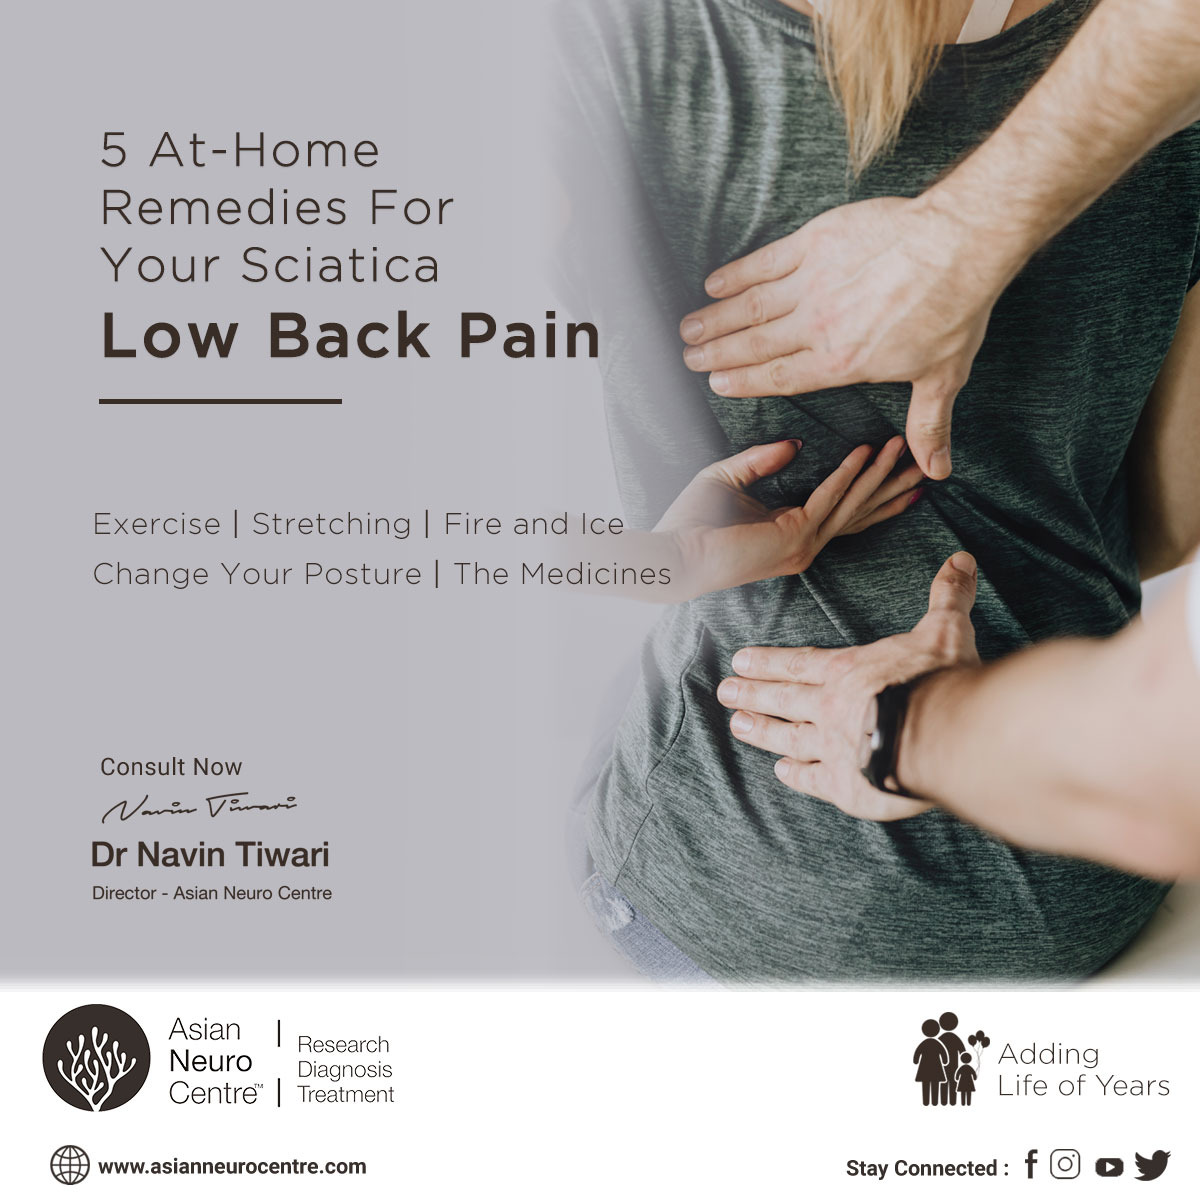 Home Remedies For Your Sciatica & Low Back Pain